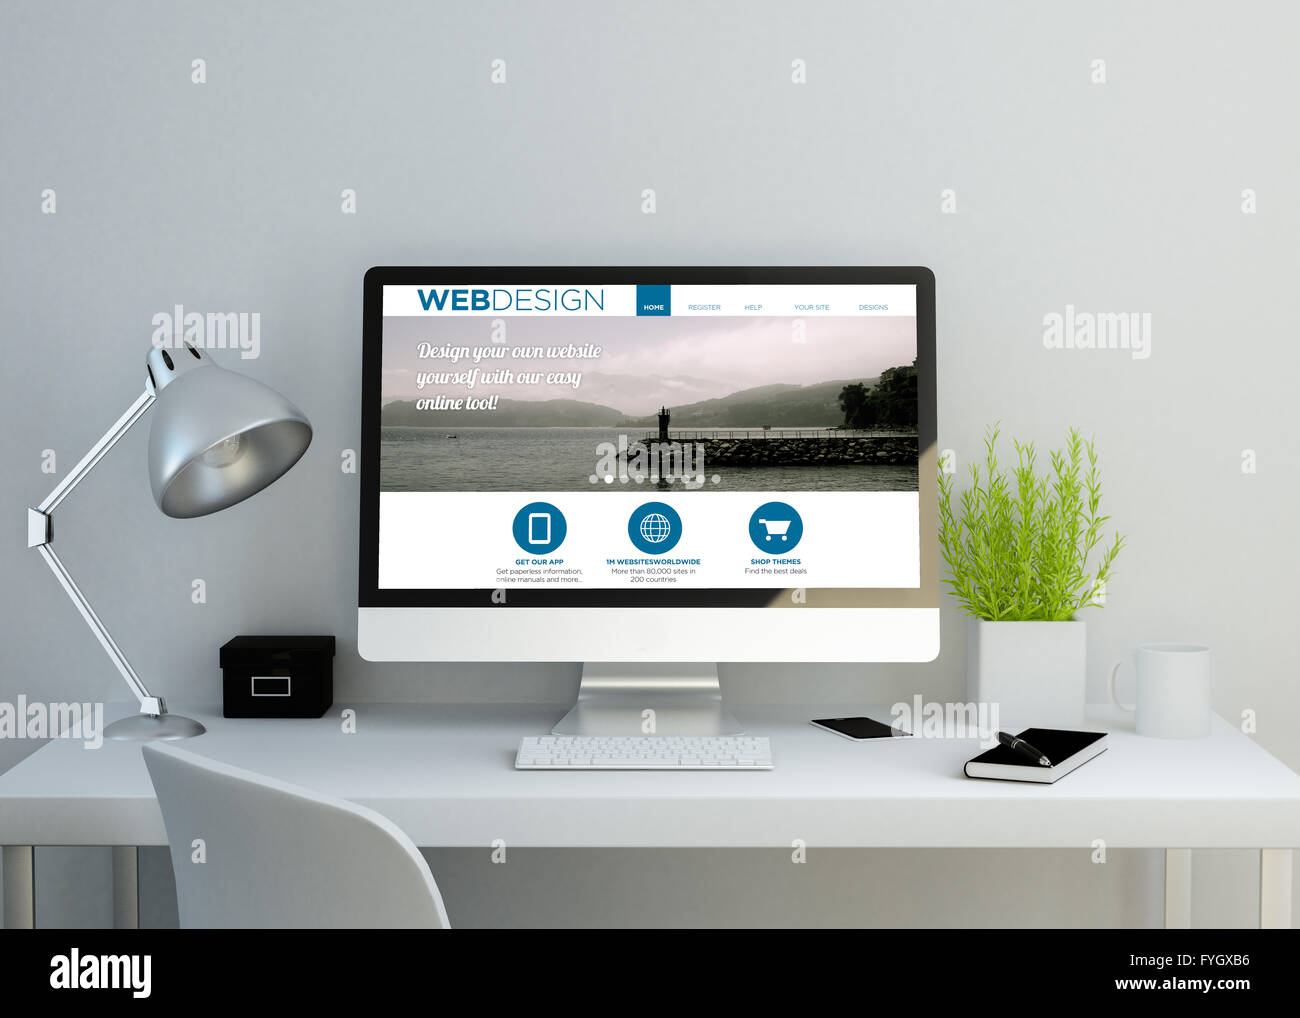 modern clean workspace showing web design website on screen 3d illustration all screen graphics are made up